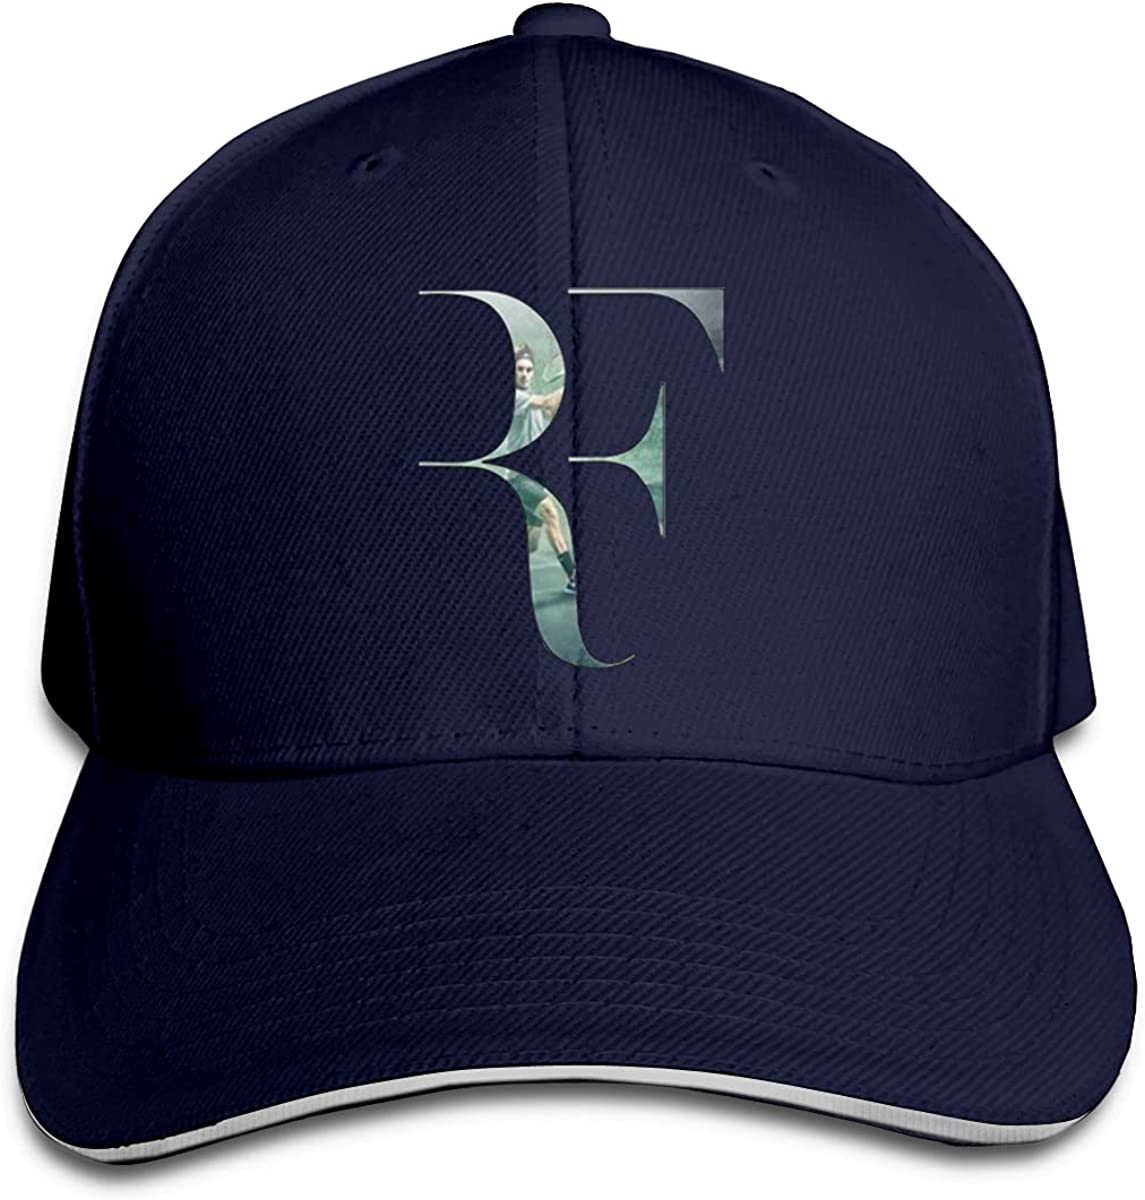 CUICAN Men Mesa Mall Women Baseball Cap Fitted Fashion Federer Max 85% OFF Roger Sport